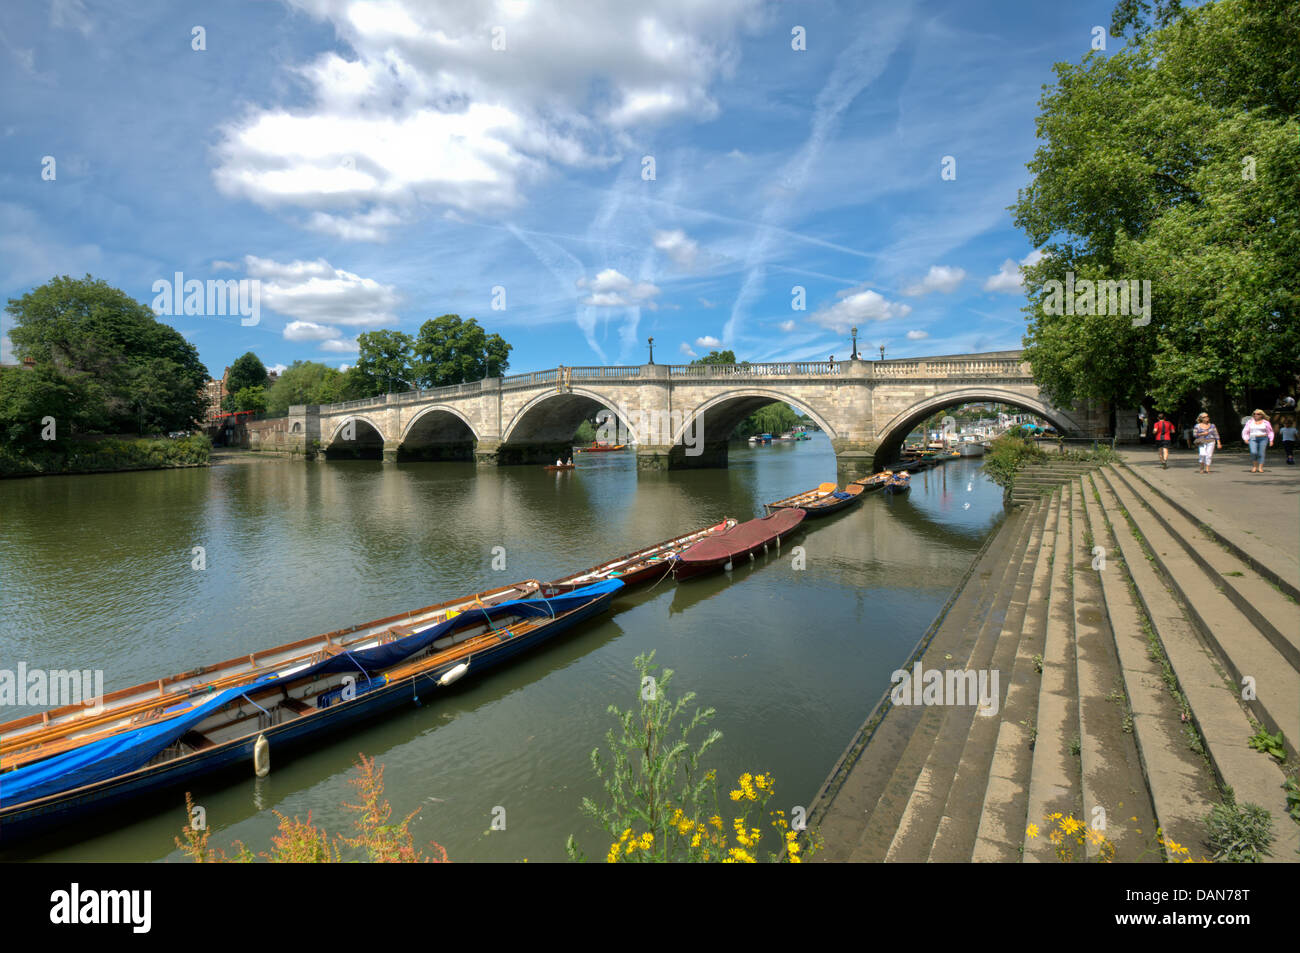 The Thames riverside at Richmond-upon-Thames, a popular London suburb and the Richmond Bridge, built between 1774 - Stock Image